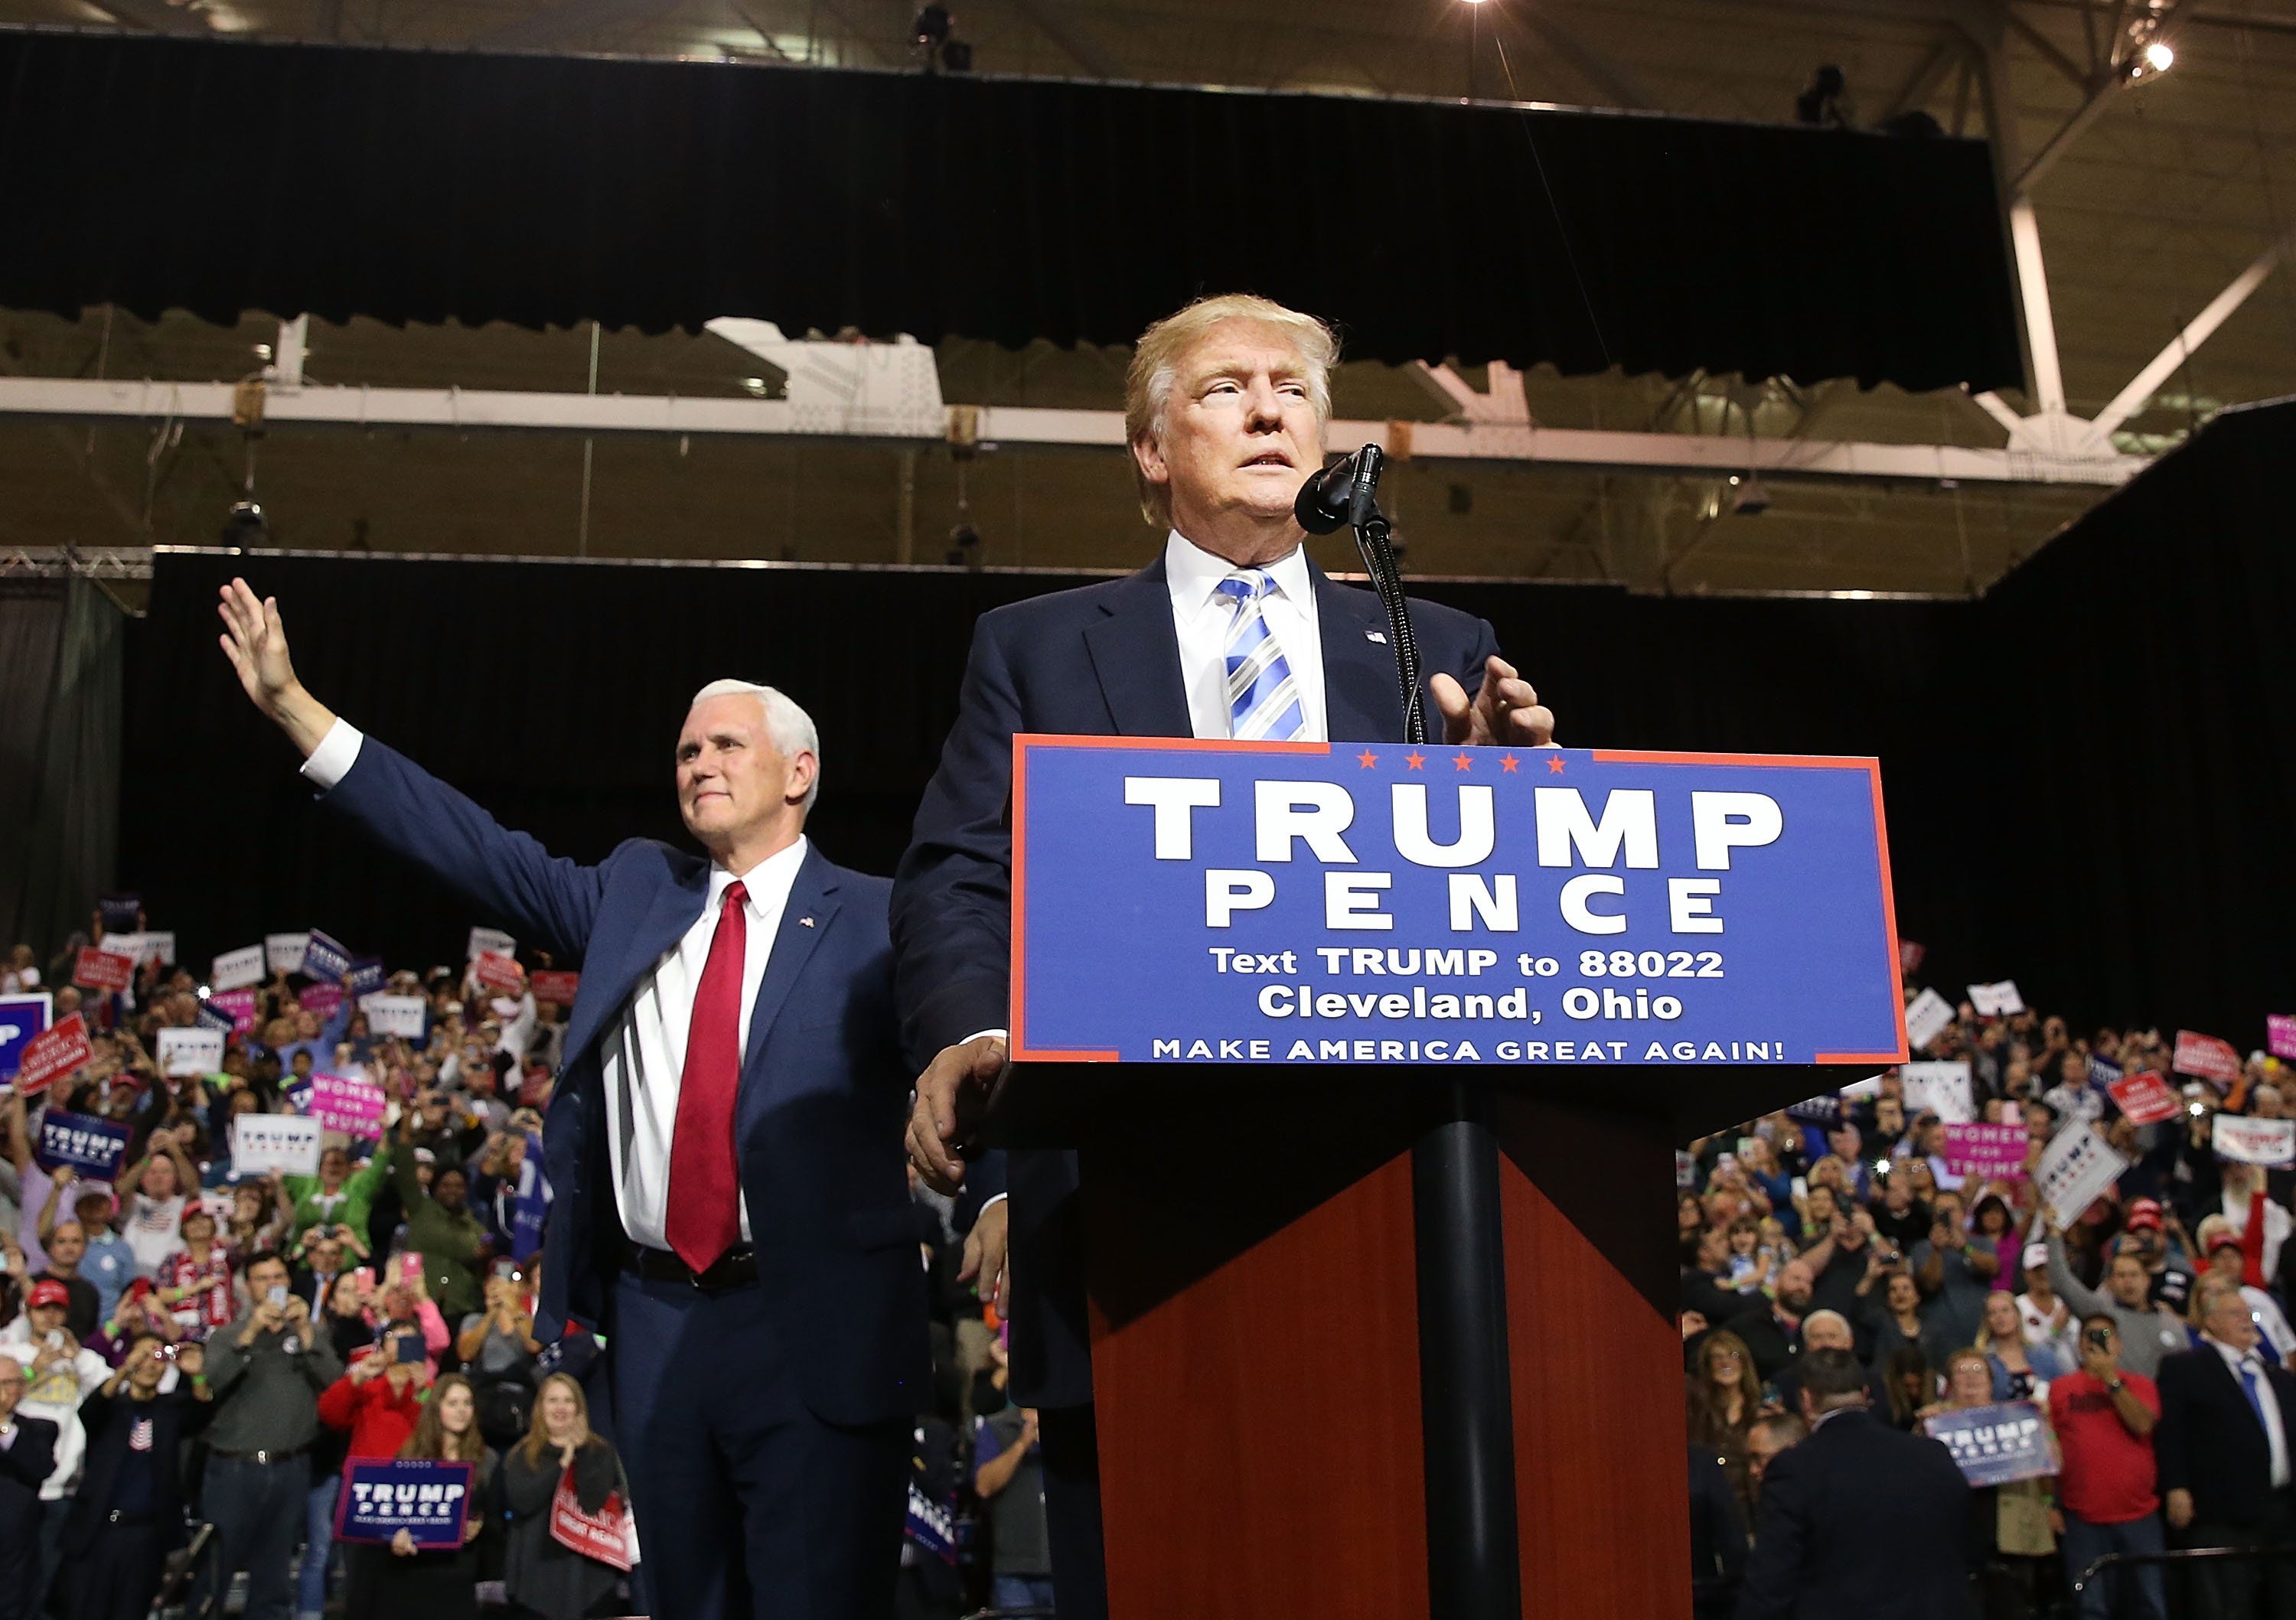 Vice Presidential candidate Mike Pence stands with Donald Trump during a rally on October 22, 2016 in Cleveland, Ohio.